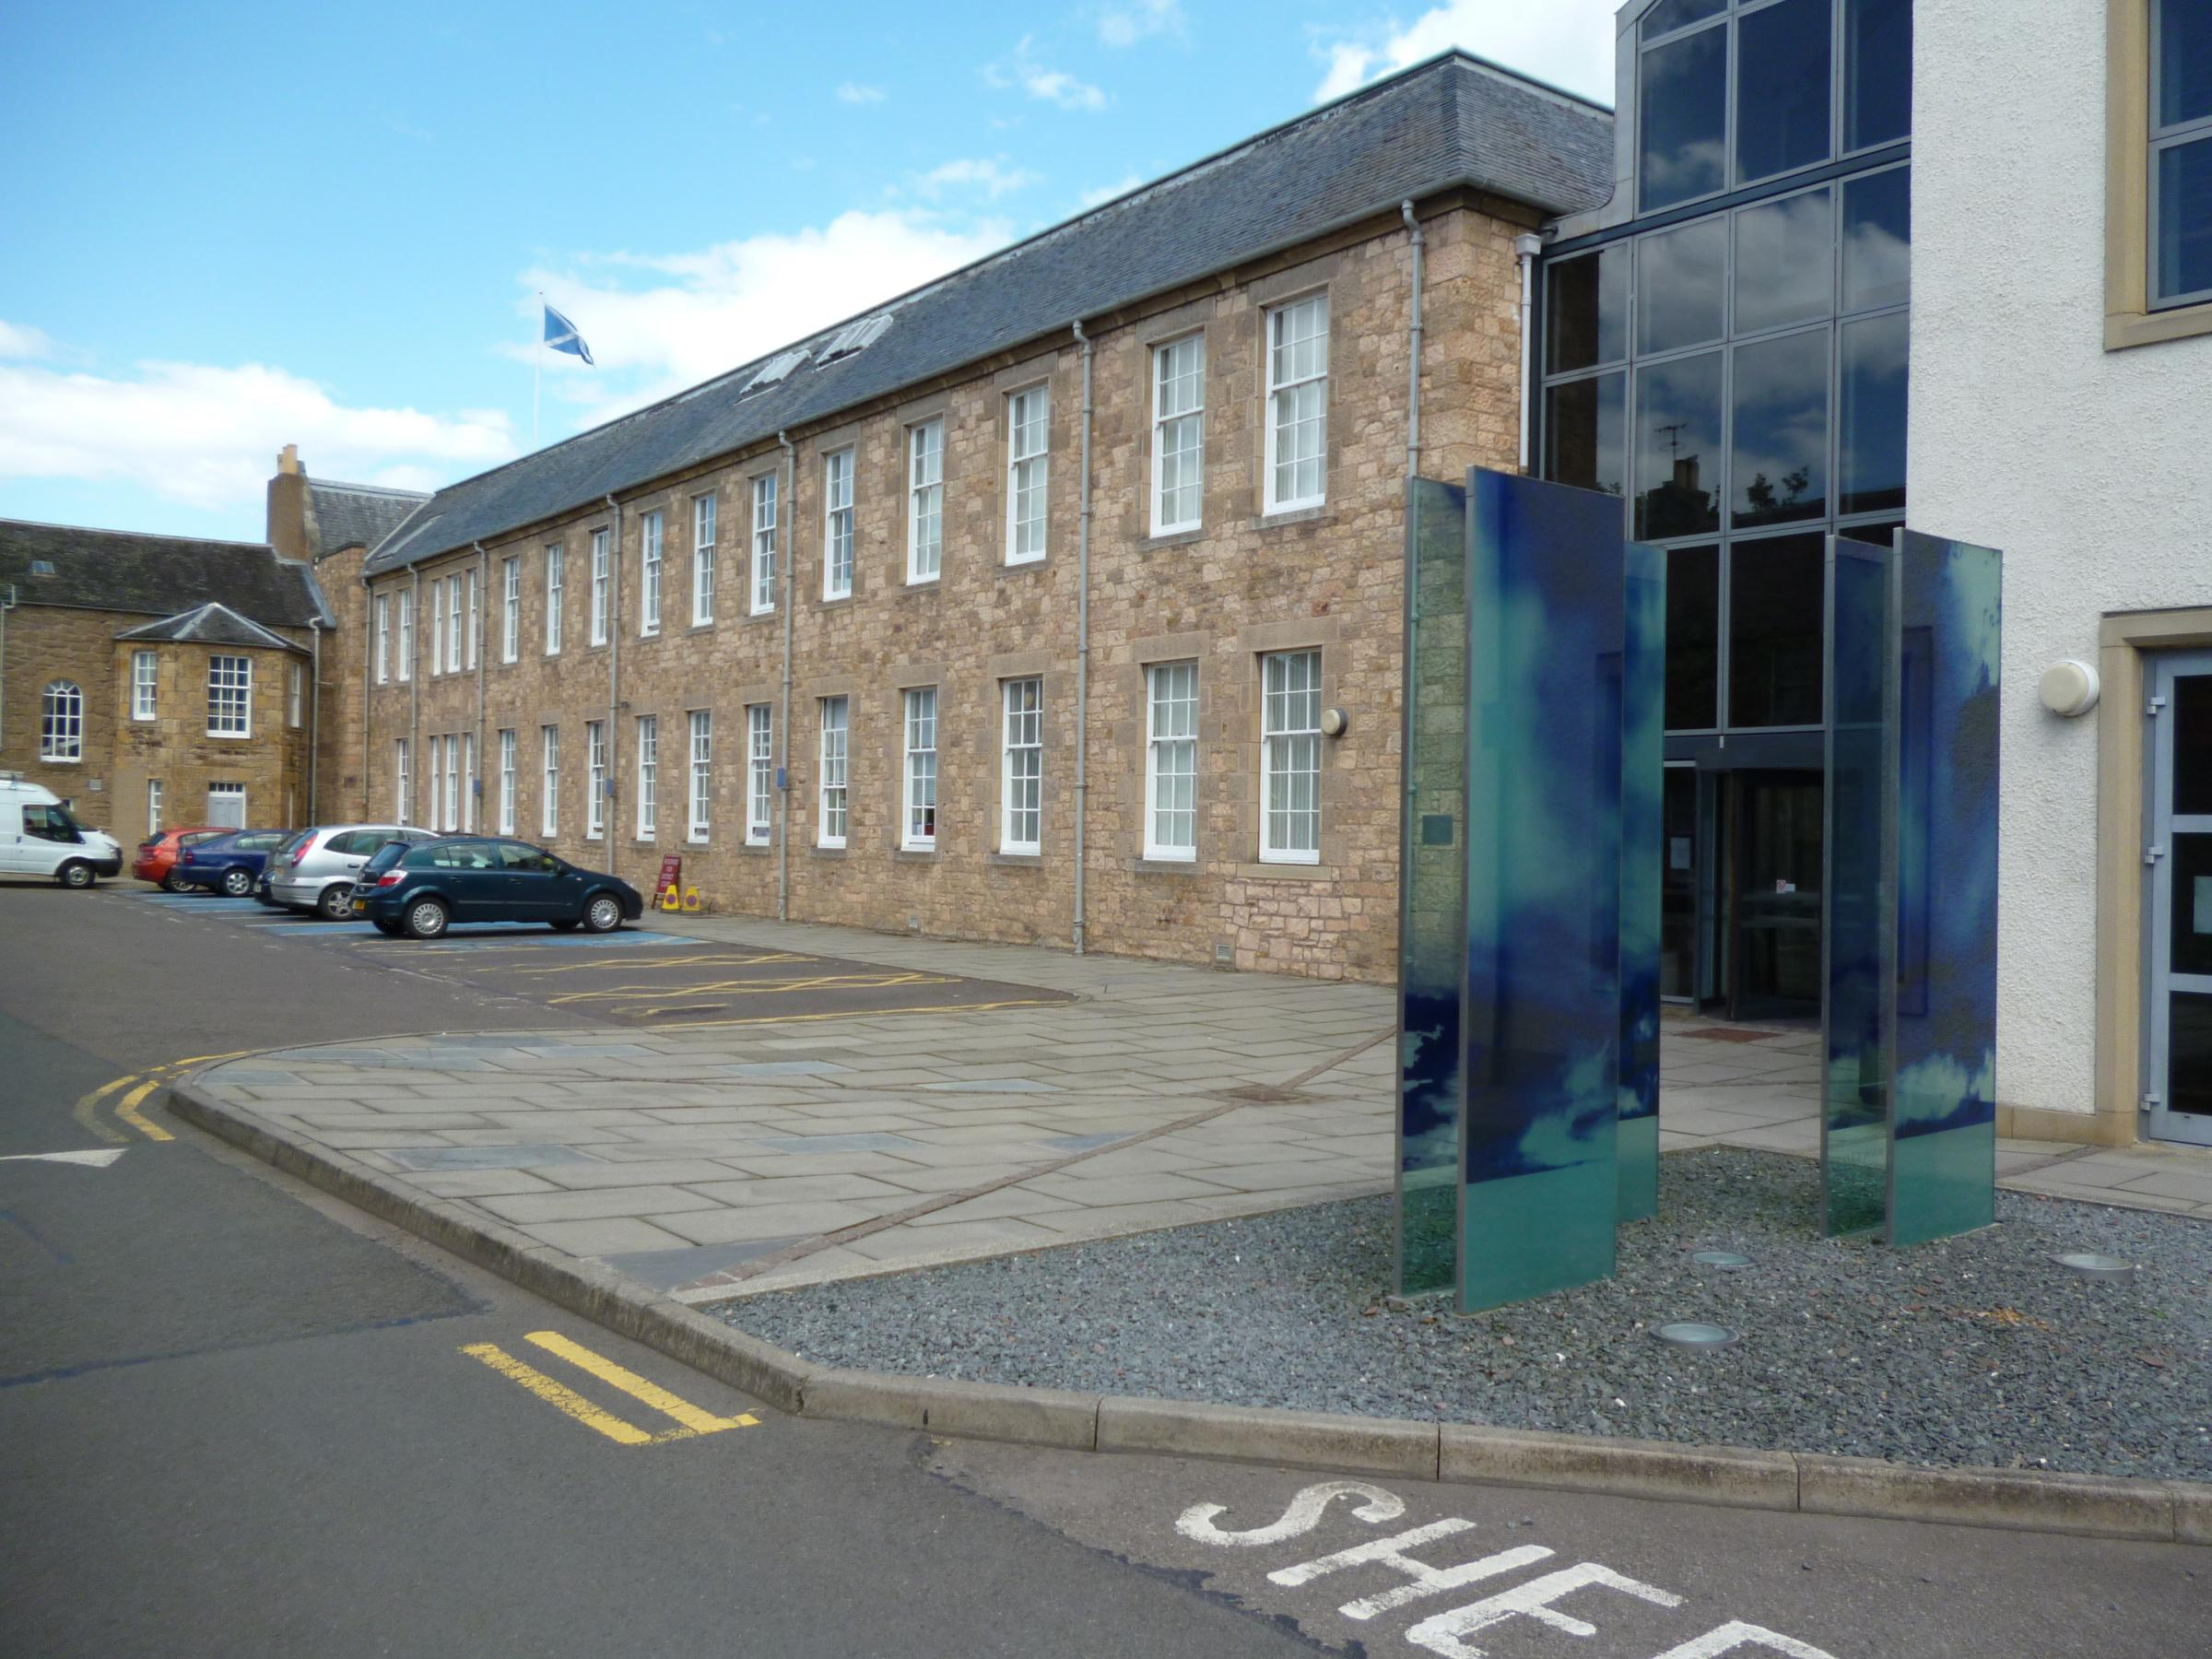 John Muir House, East Lothian Council's headquarters